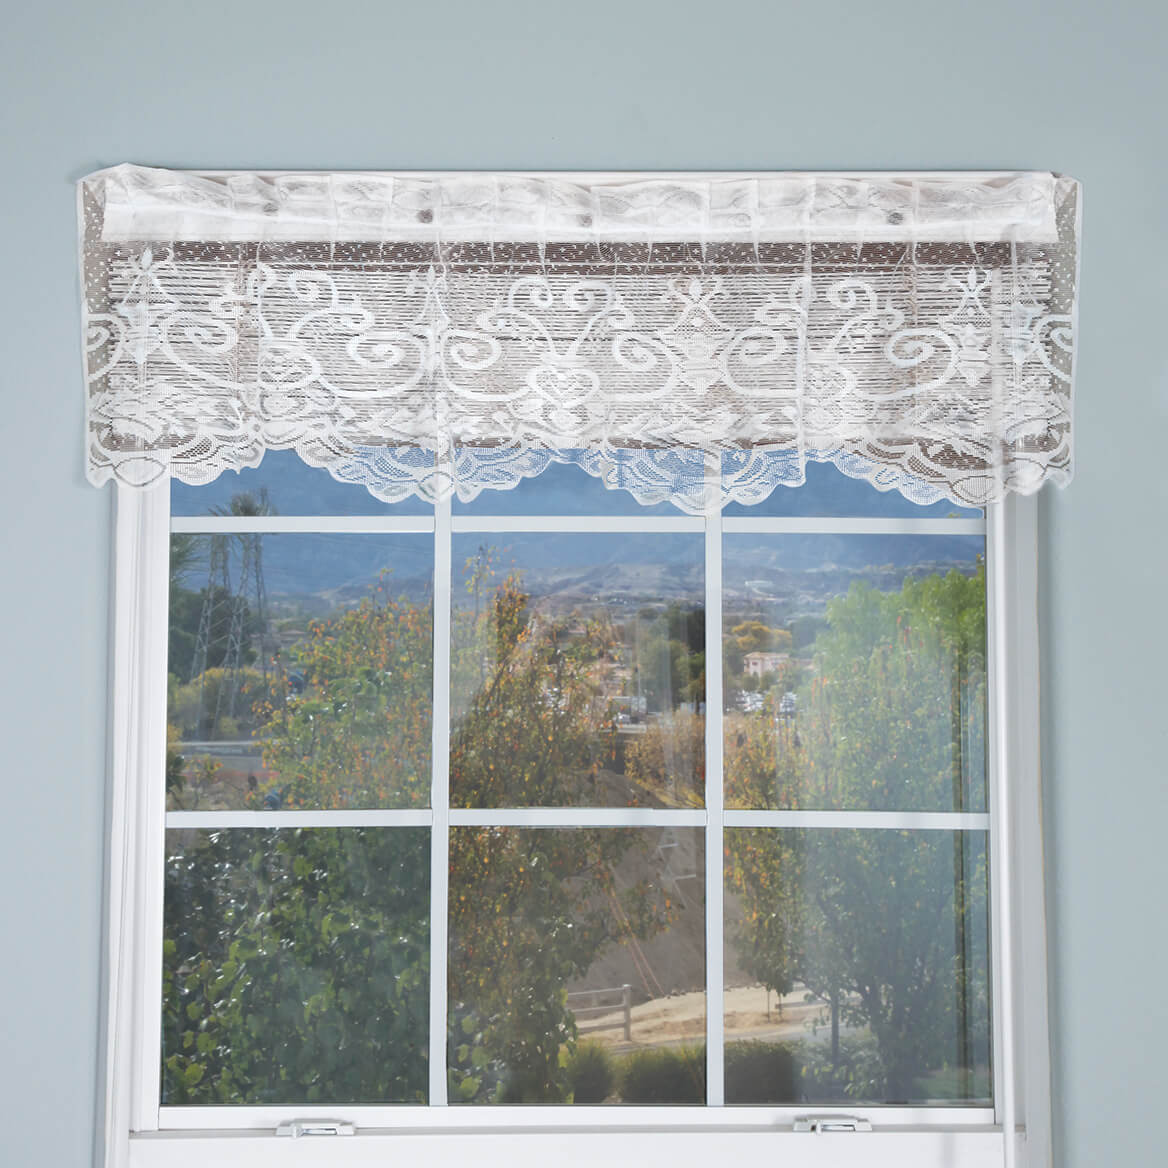 Magnetic Floral Lace Valance-352254